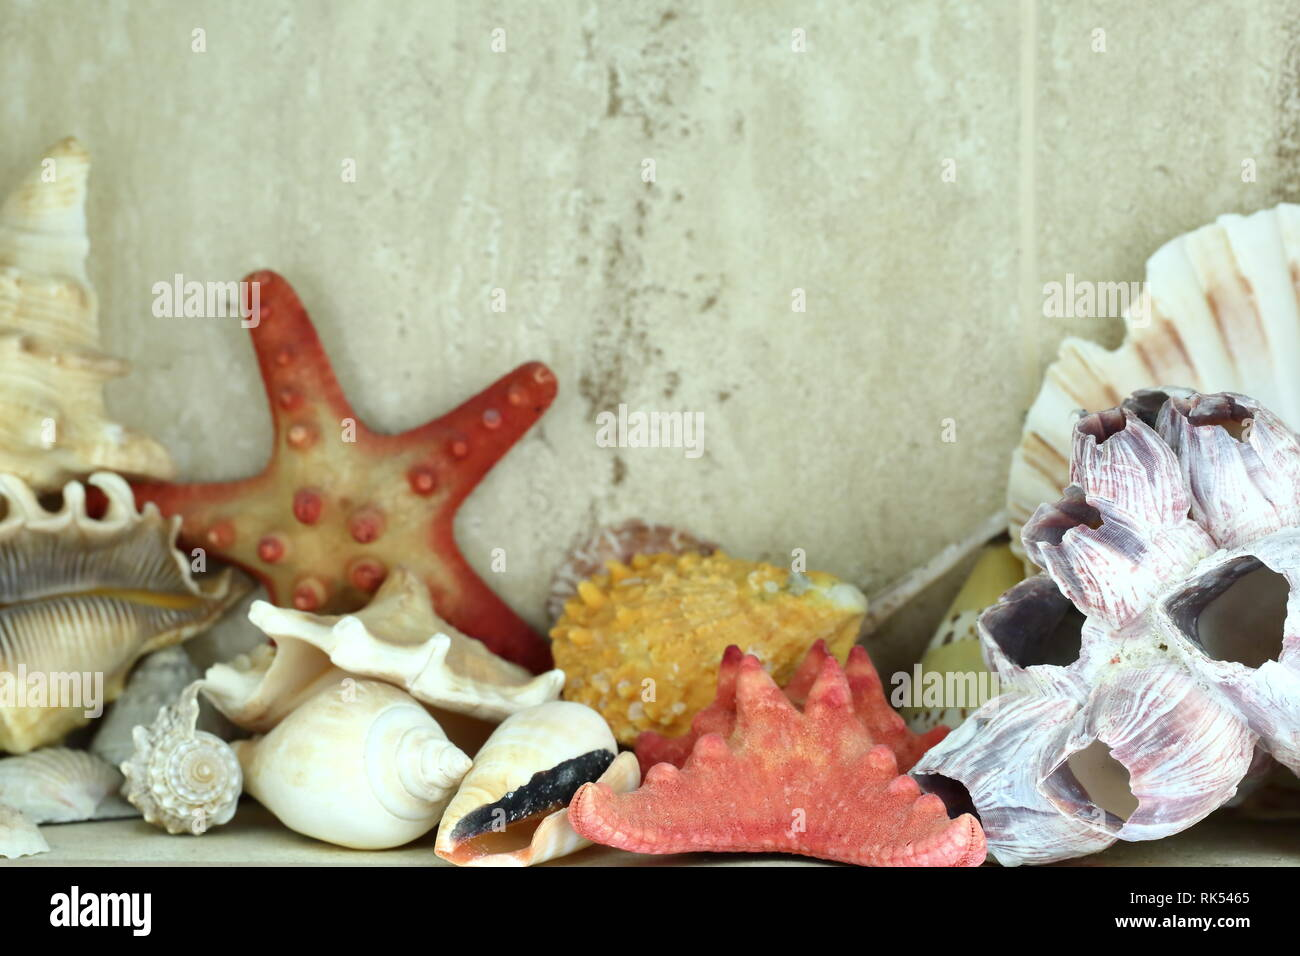 Shells of crustaceans in various colors and shapes as a bathroom or toilet decoration. - Stock Image